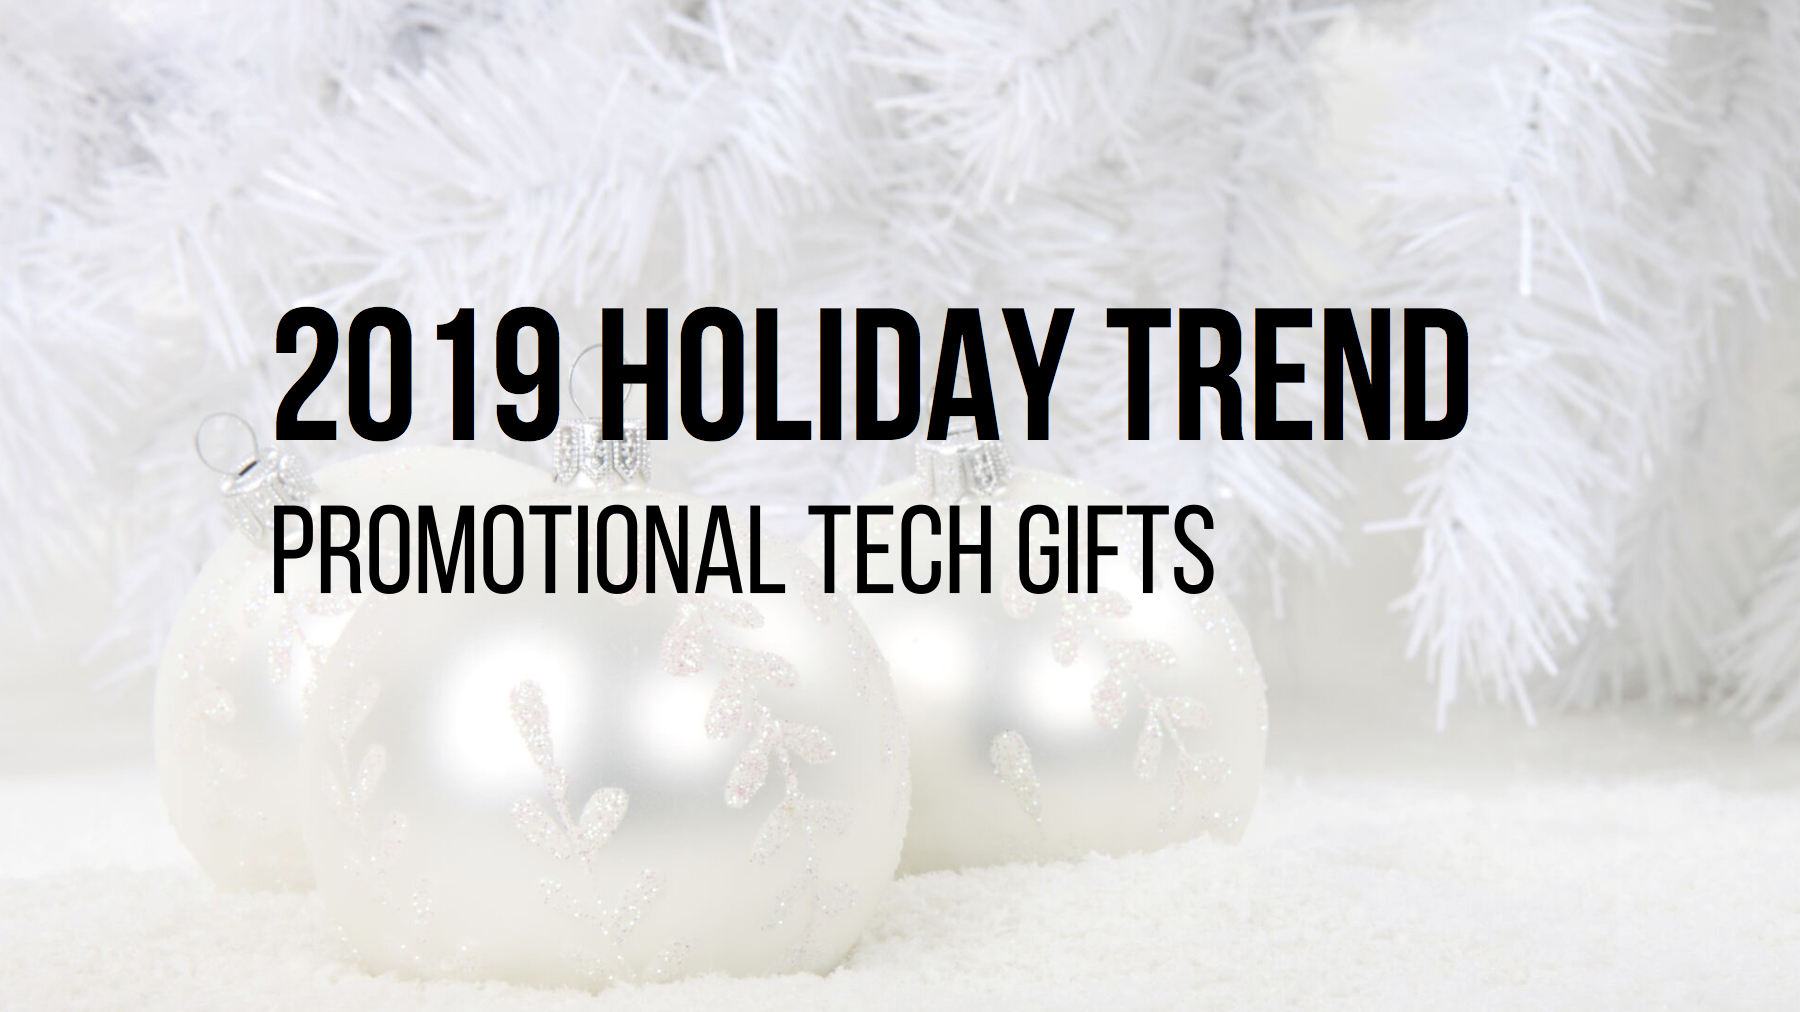 5 Promotional Tech Gifts that are Trending this Holiday Season